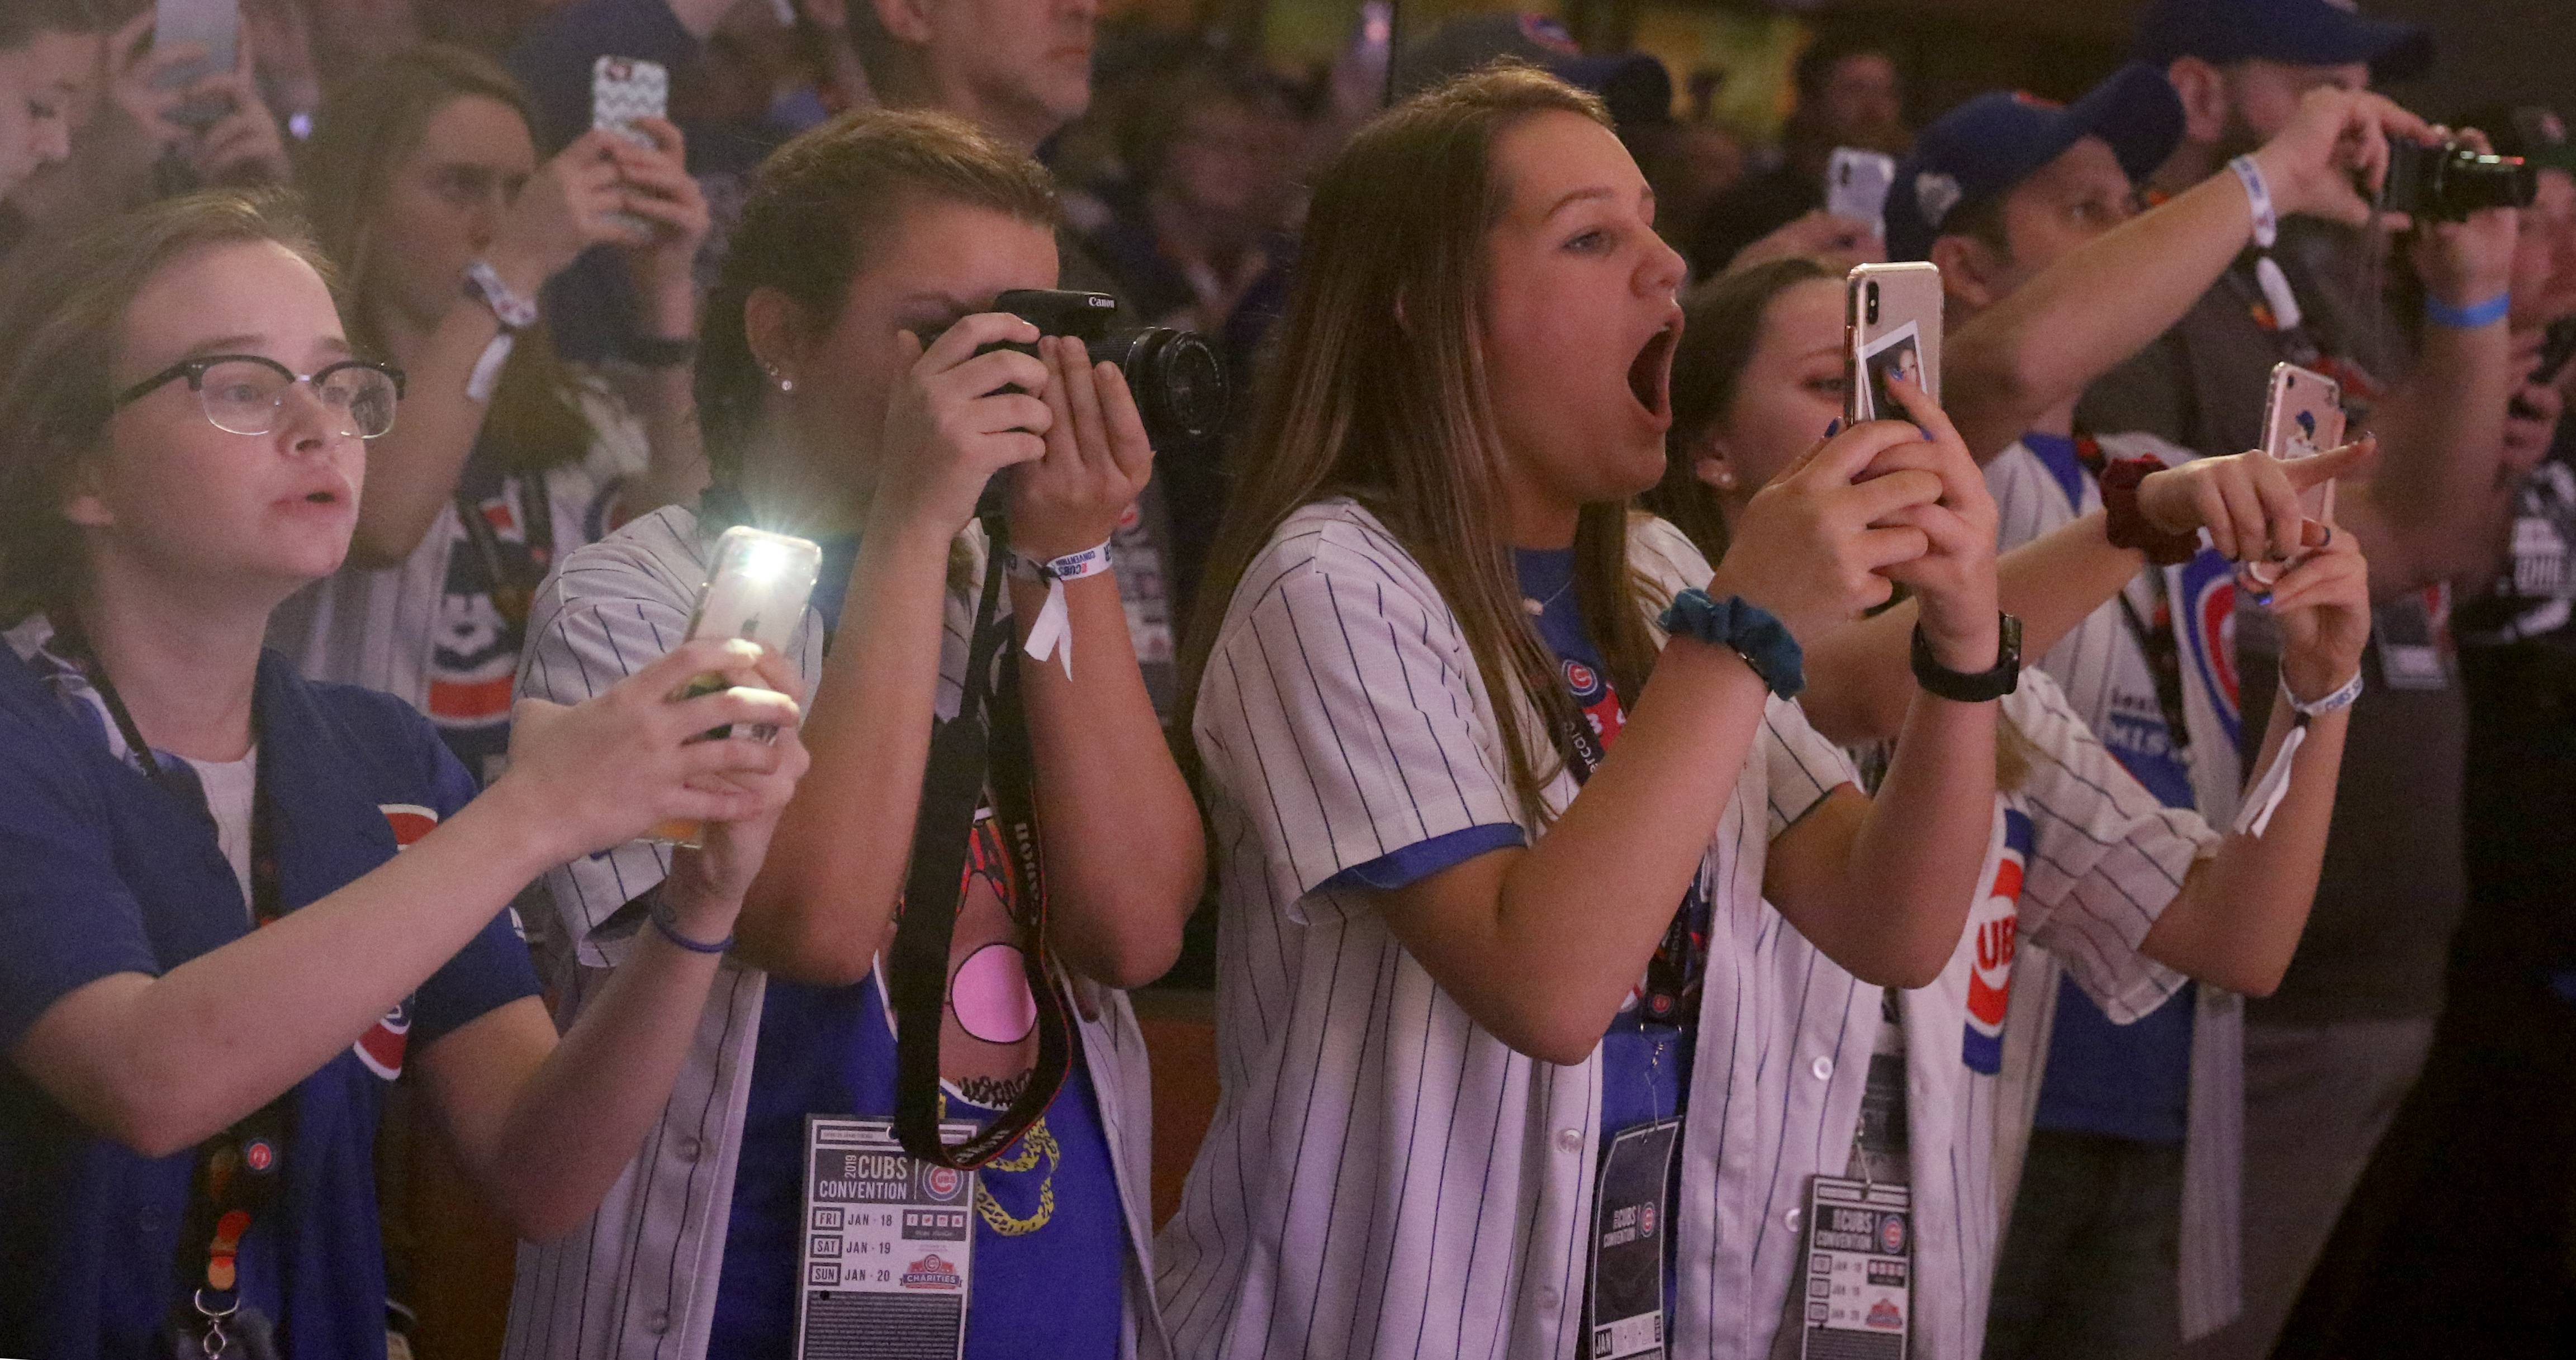 Fans react as players are introduced during opening night Friday of the 2019 Chicago Cubs Convention at the Sheraton Grand in Chicago.